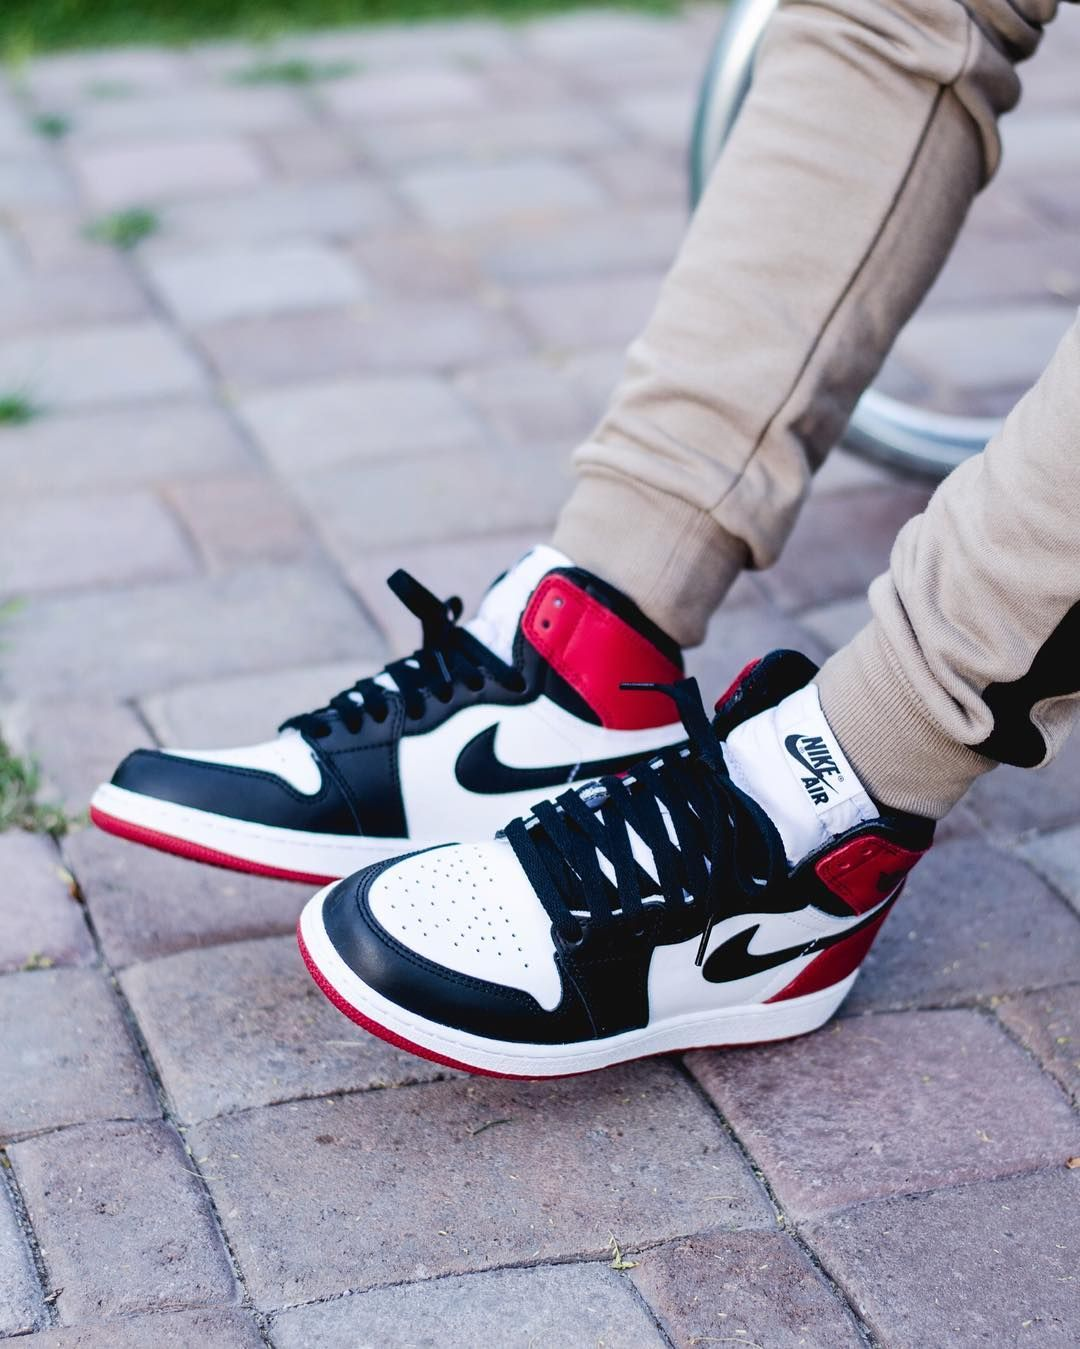 81cdae8b482 Air Jordan 1 Retro High